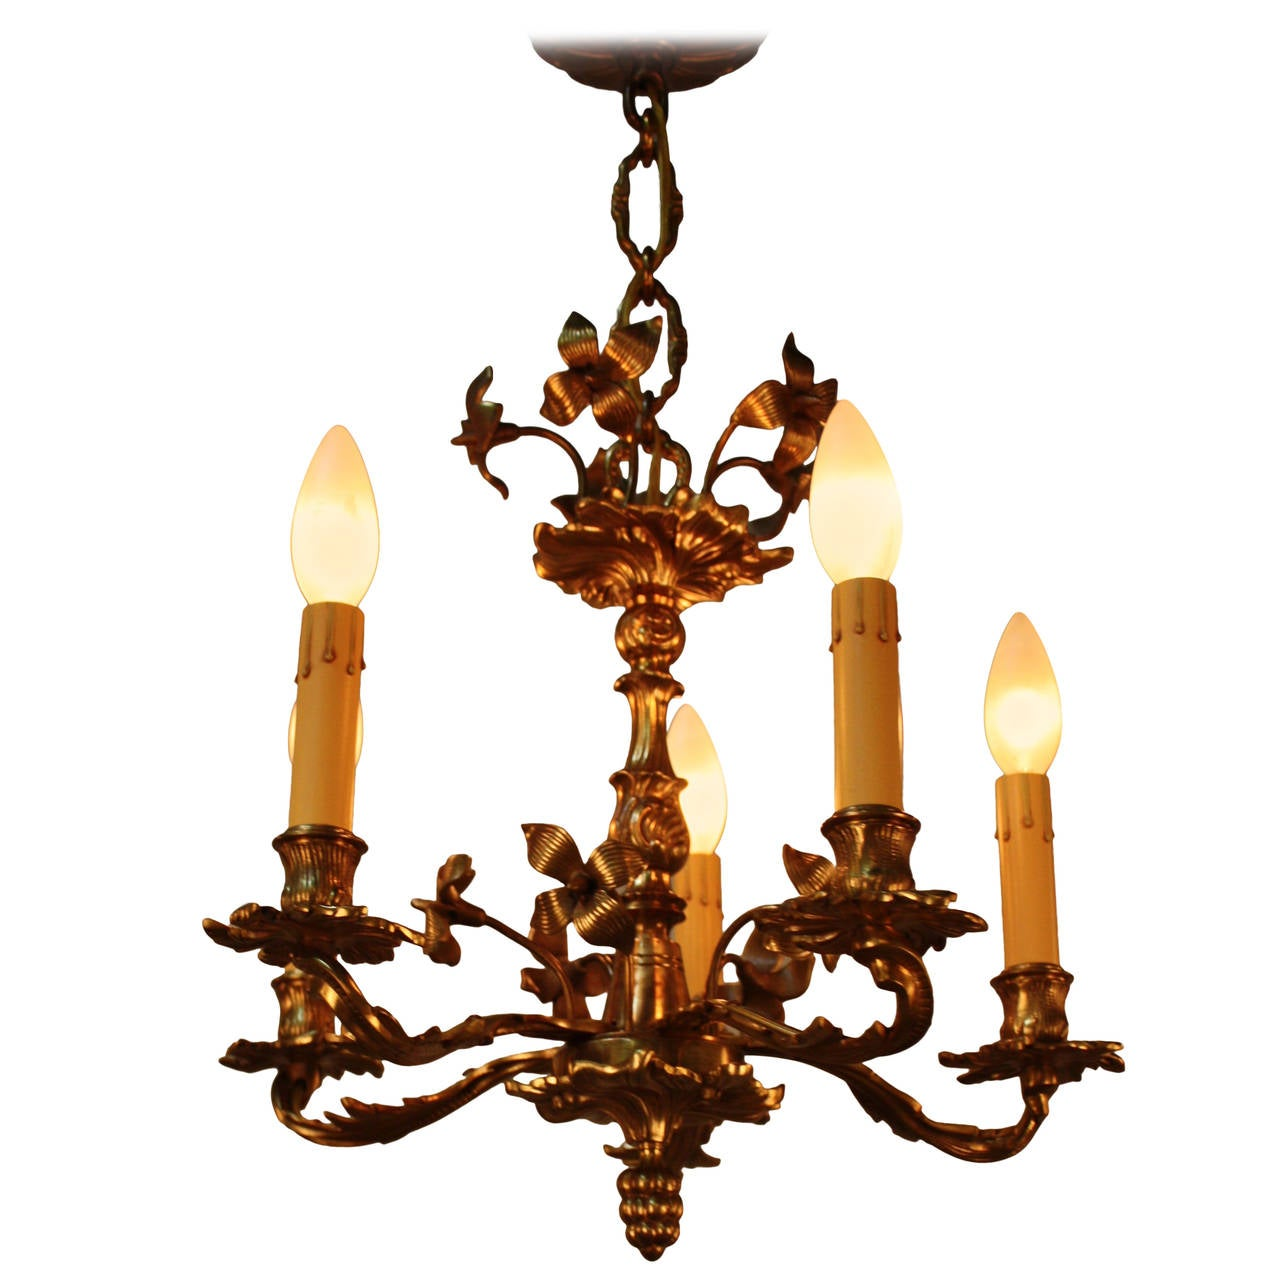 French art nouveau bronze chandelier at 1stdibs for Chandelier art nouveau